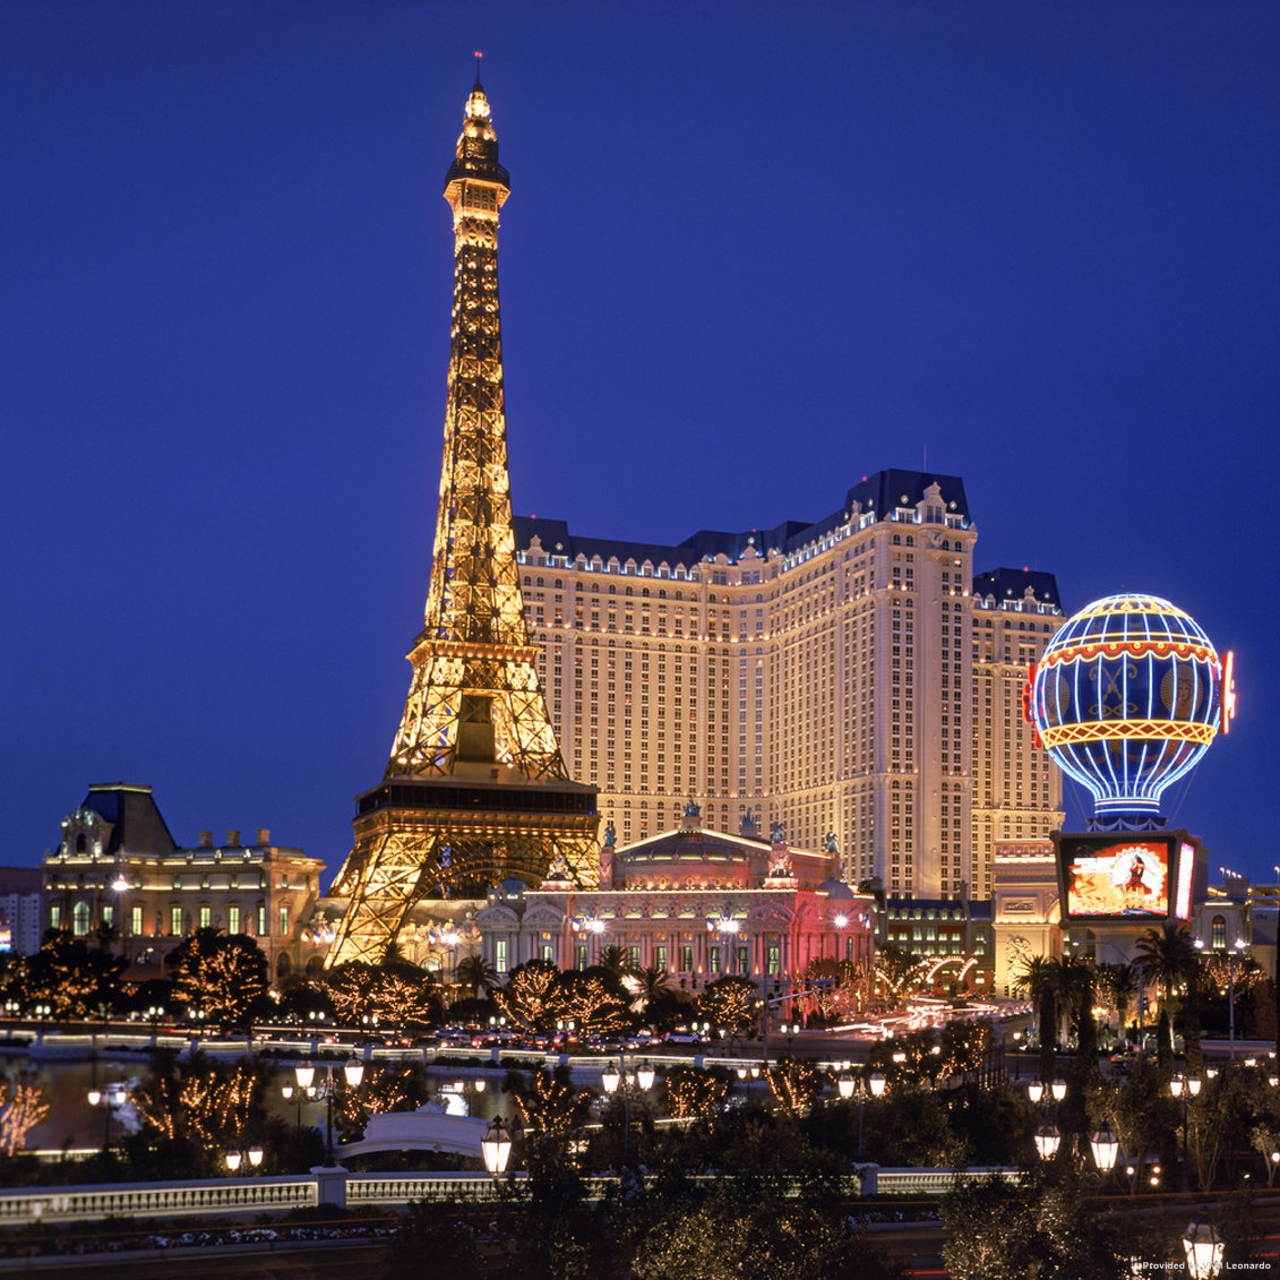 Hotel Paris Las Vegas United States Of America At Hrs With Free Services